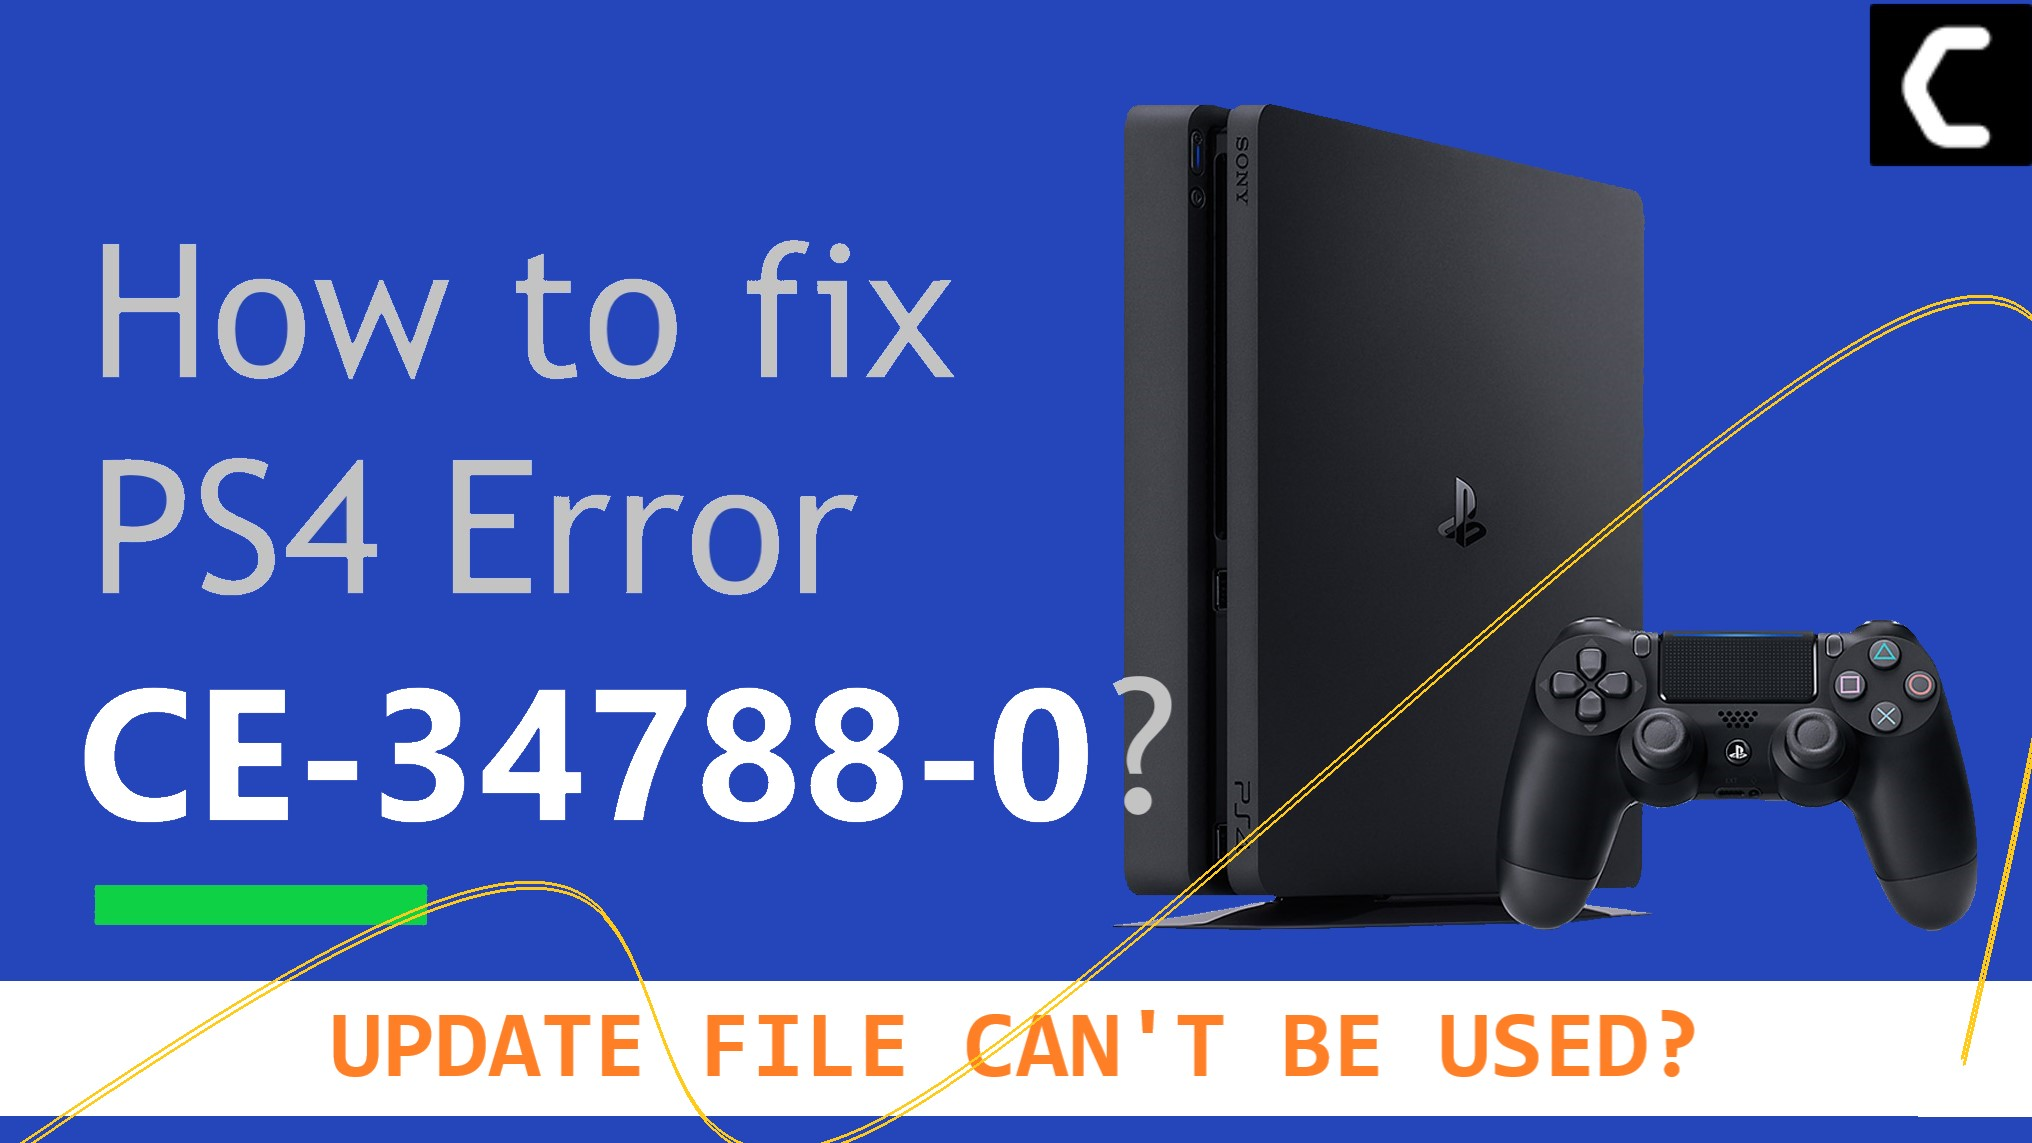 PS4 Error CE-34788-0 – Update File Cannot Be Used